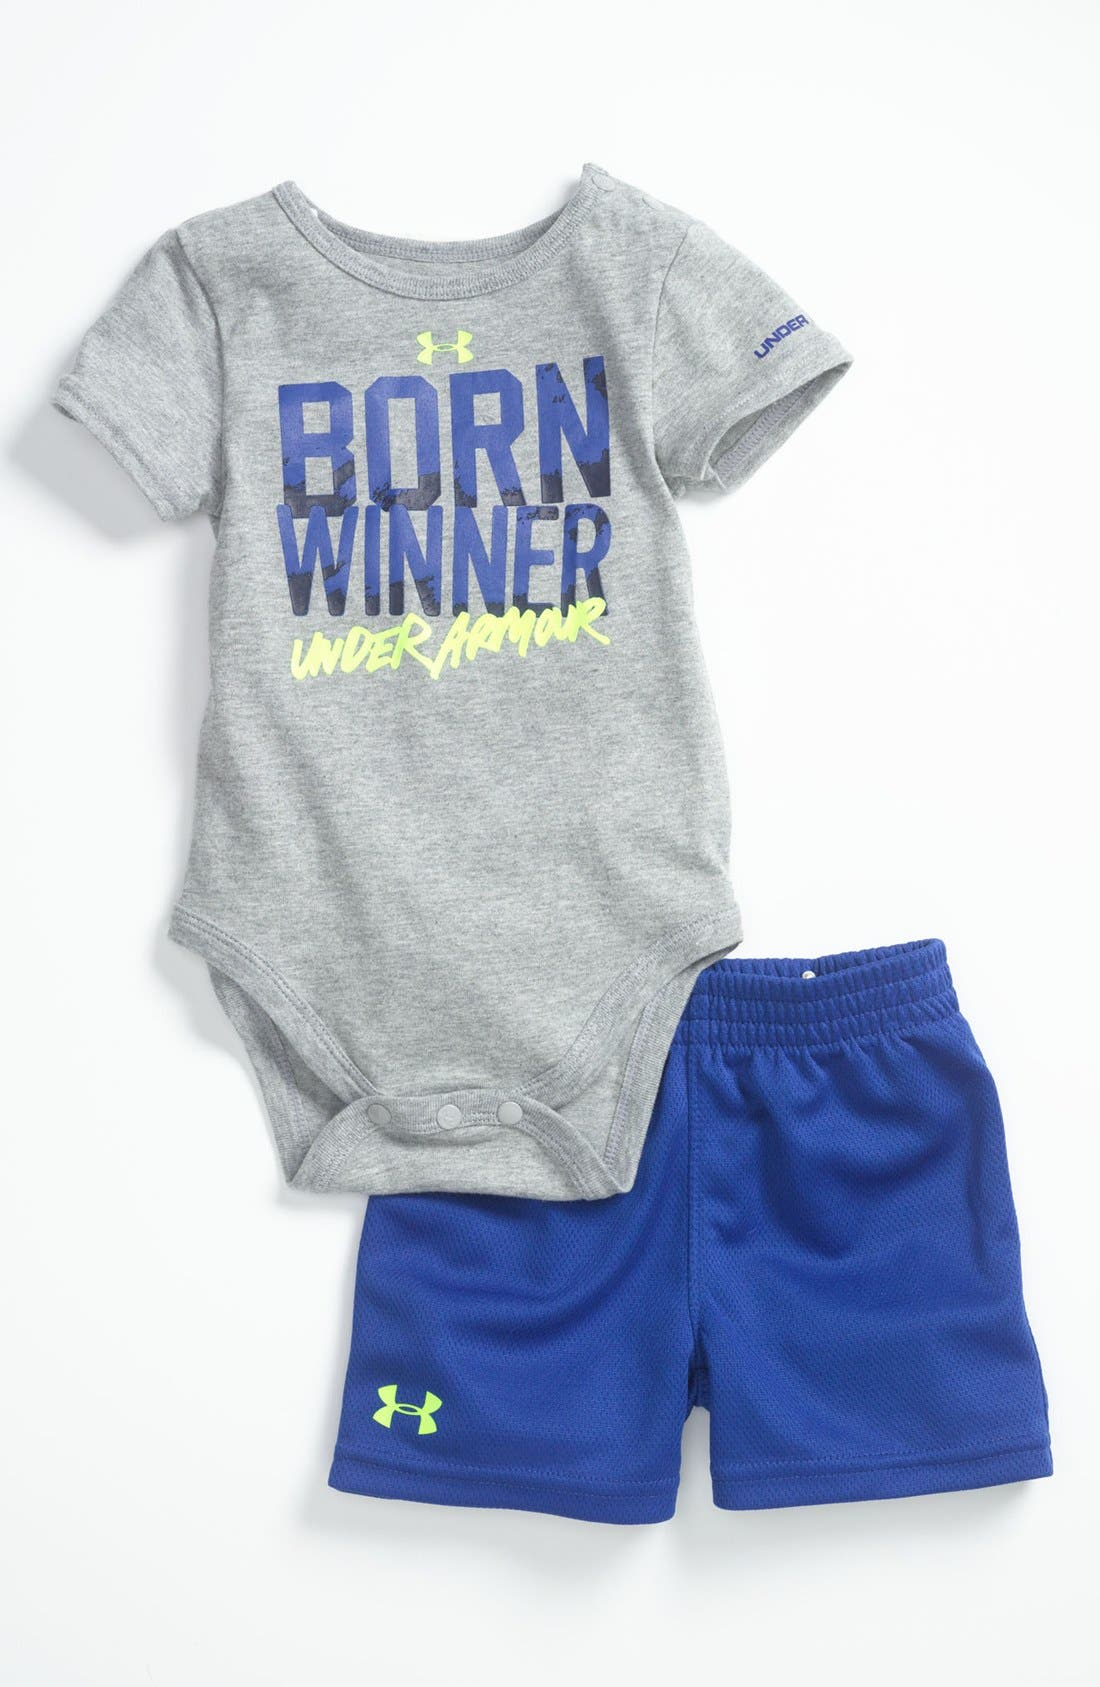 Alternate Image 1 Selected - Under Armour 'Born Winner' Bodysuit & Shorts (Baby)